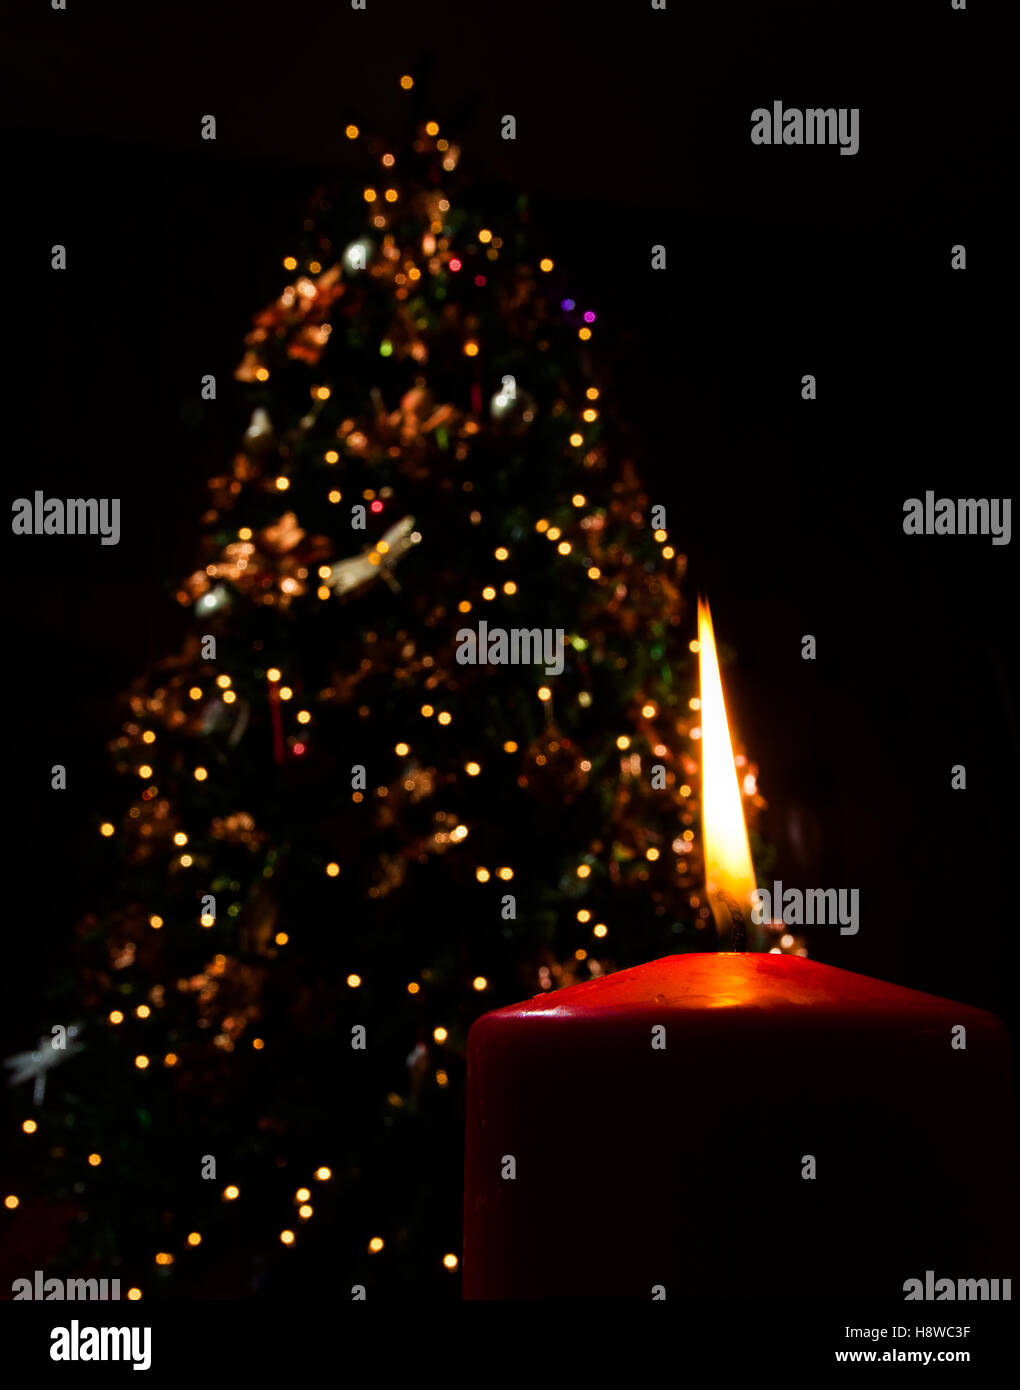 single candle burning in the dark with a christmas tree behind